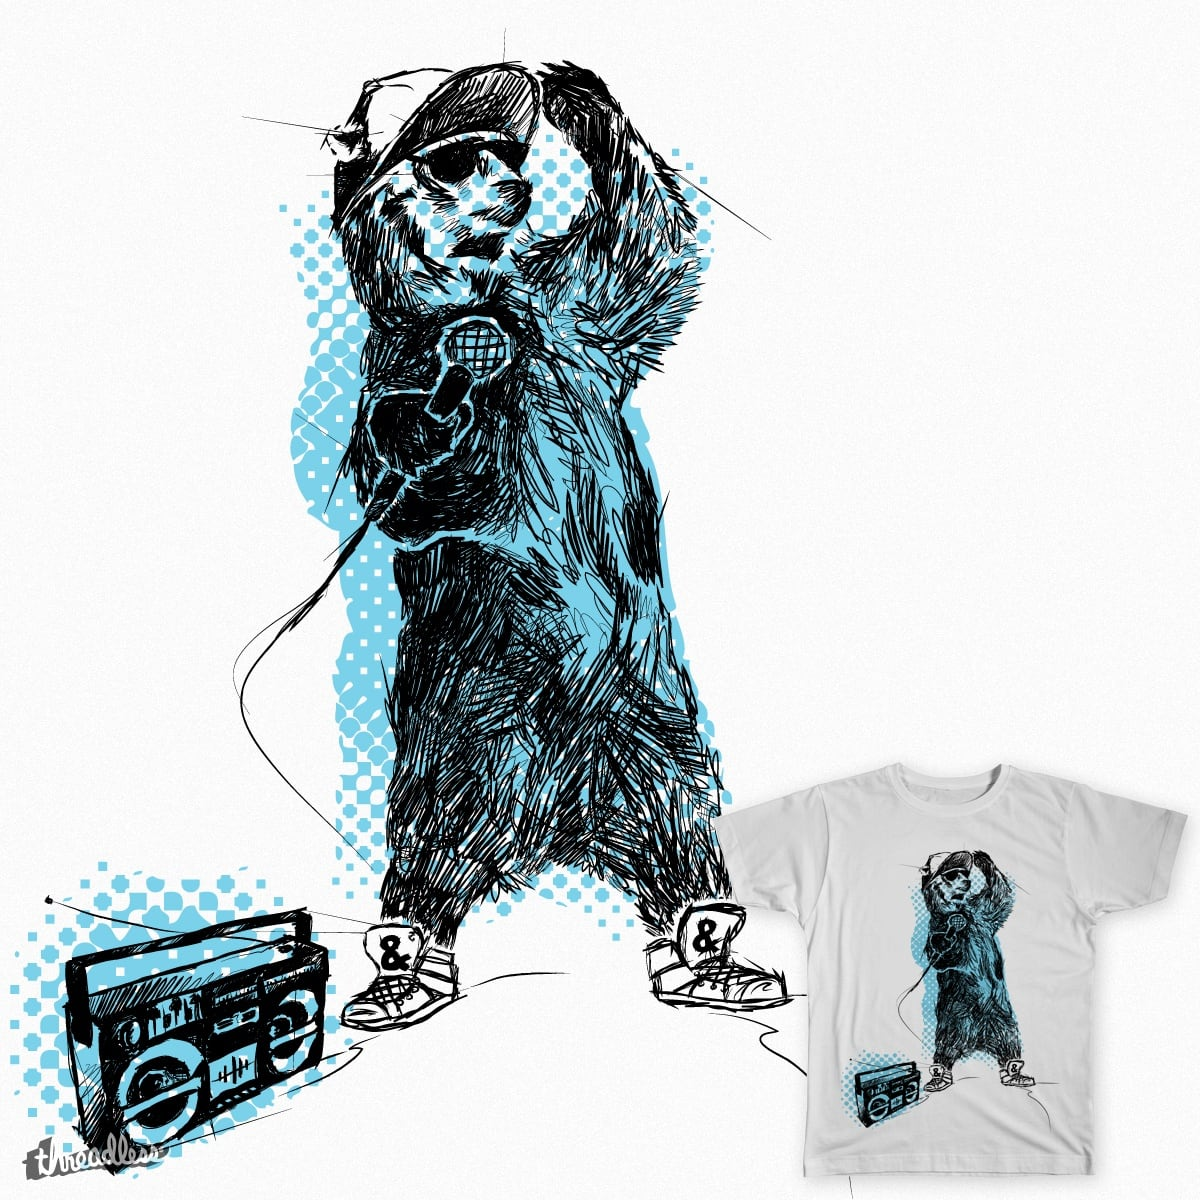 MC Grizzly by OandP_Creative on Threadless